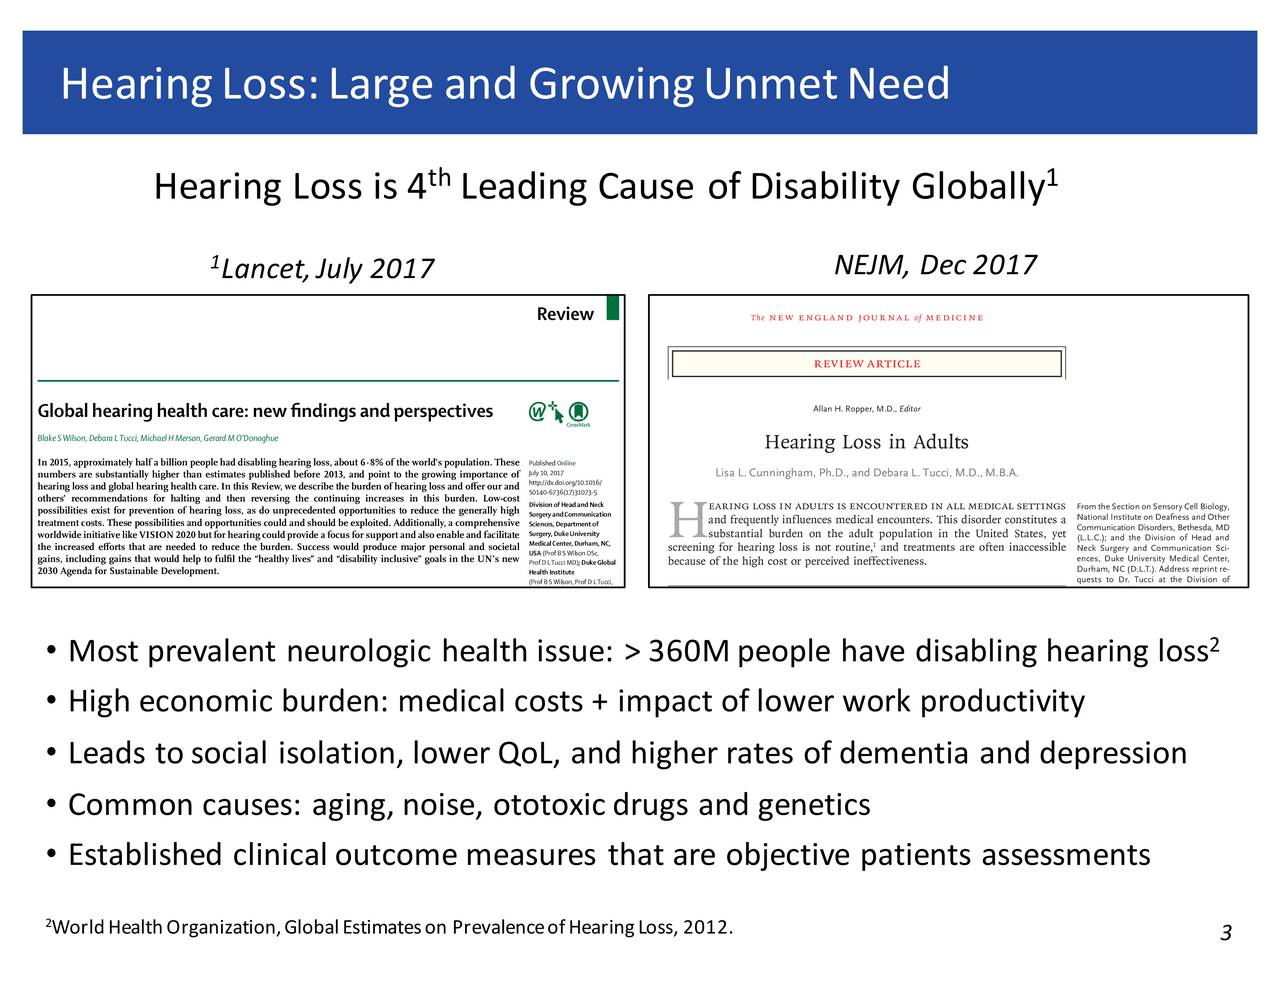 """Hearing Loss is 4 Leading Cause of Disability Globally 1 1 Lancet, July 2017 NEJM, Dec 2017 Review Thenew england journal omedicine Review Article GlobalhearingheaOlthcare:newfindiOngsandperspectives €llan H. """"o''er, M.D., Editor BlakeSWilson,DebaraLTucci,MichaelHMersonh,GerardMO'Donoghue Hearing Loss in Adults numbers are substantially higher than estimates published before 2013, and point to the growing importance ofCunningham, …h.D., and De†ara L. Tucci, M.D., M.B.€. hearing loss and global hearing health care. In this Review, we describe S0140-6736(17)31073x-5loss and off er our and others' recommendations for halting and then reversing the continuing incDivisionof Head and Neckow€earing loss in adults is encountered in all medical setFrom the Section on Sensory Cell Biology, possibilities exist for prevention of hearing loss, as do unprecedented oSurgery andCommunicationhe and frequently influences medical encounters. This disorder constitutes a on Deafness and Other worldwide initiative liƒe """"I…I†‡ 2020 but for hearing could provide a focus for support and also enable and facilitate on the adult population in the United States, yet Disorders, Bethesda, MD the increased efforts that are needed to reduce the burden. …uccess would produce maˆor personascreening for hearing loss is not routine, and treatments are often inaccessiblemmunication Sci-and gains, including gains that would help to ful‰l the Šhealthy lives‹ and ŠProf D 'ƒu€€i """"D); DukeGlobalof the high cost or perceived ineffectiveness. ences, Duke University Medical Center, 2030 'genda for …ustainable Ževelopmbent. Health Institute ƒuests to Dr. Tucci at the Division ofe- (Prof B SWilson, Prof D 'ƒu€€i, H d dN kS dC i 2 • Most prevalent neurologic health issue: > 360M people have disabling hearing loss • High economic burden: medical costs + impact of lower work productivity • Leads to social isolation, lower QoL, and higher rates of dementia and depression • Common causes: aging, noise, ototoxic drugs """